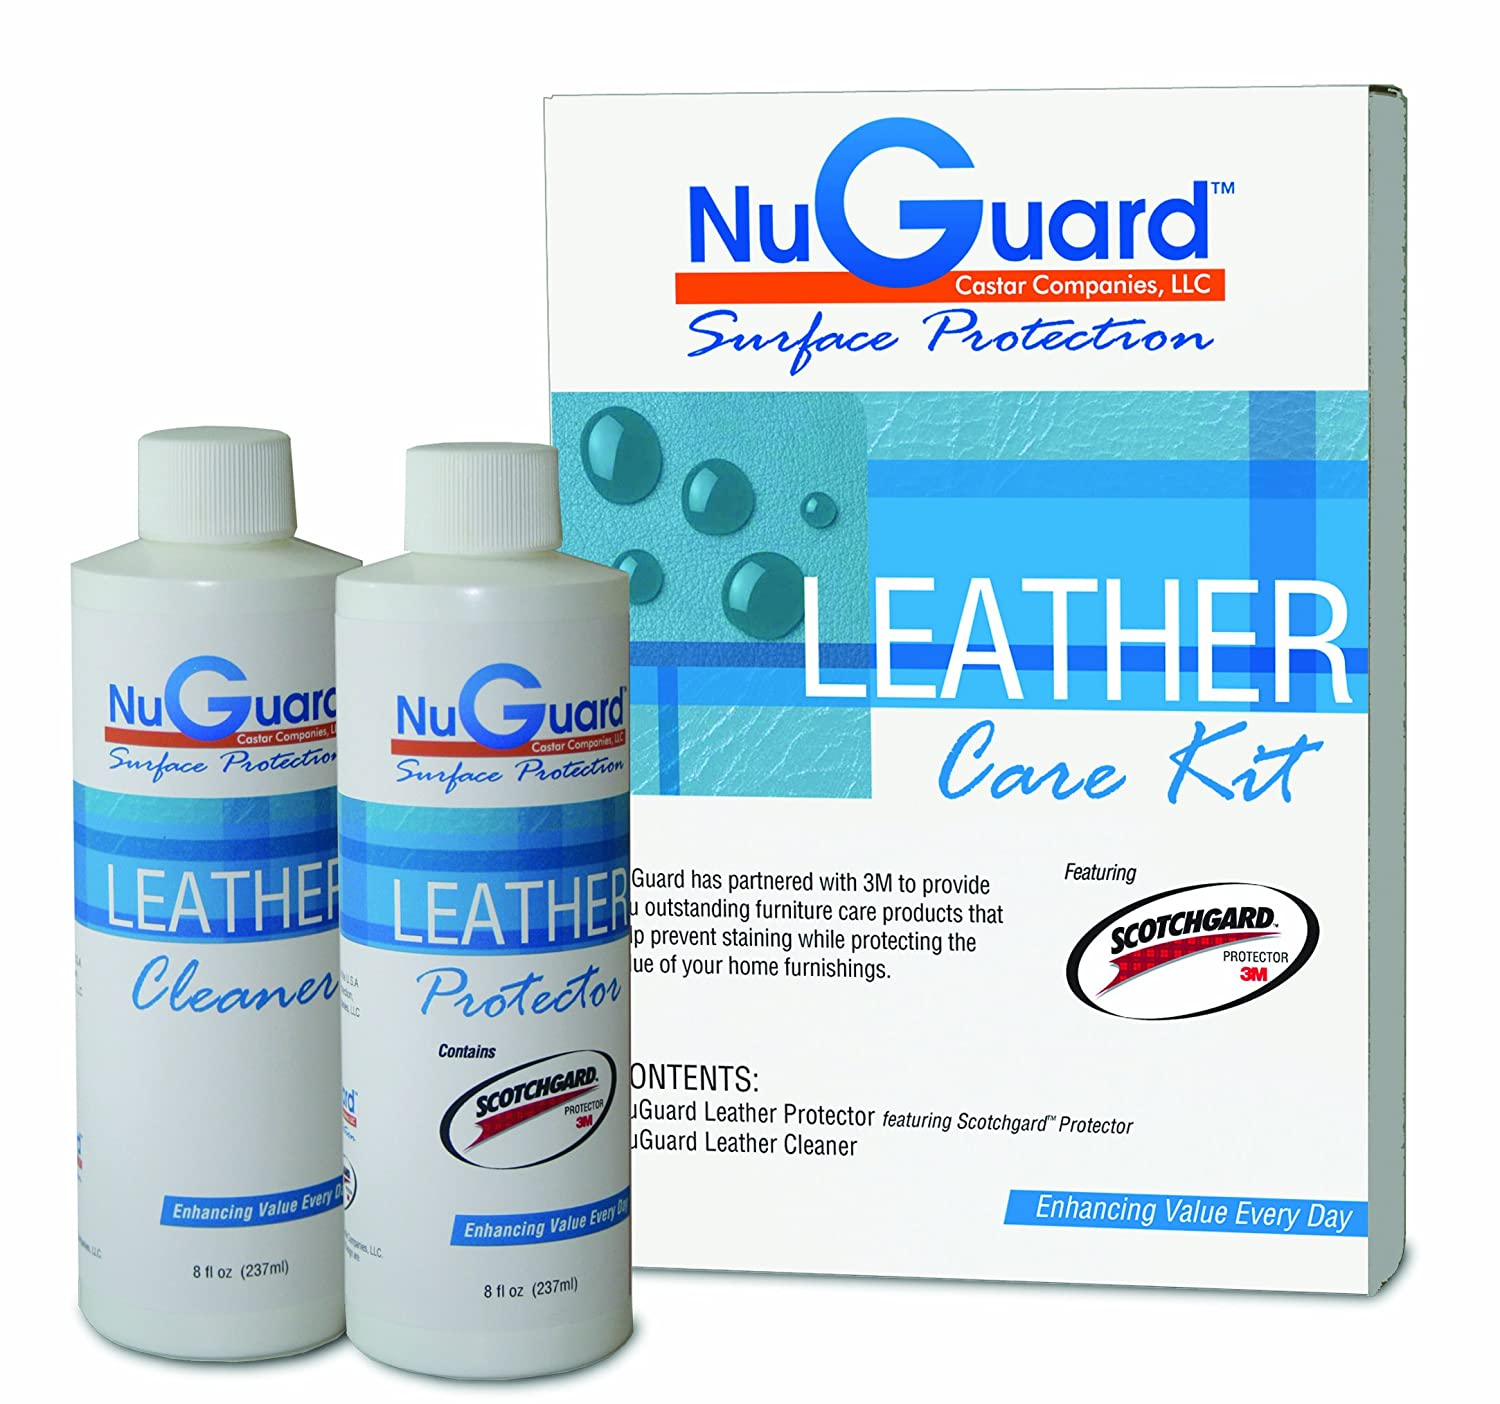 Amazon.com: NuGuard Featuring Scotchgard Leather Care Kit: Kitchen U0026 Dining